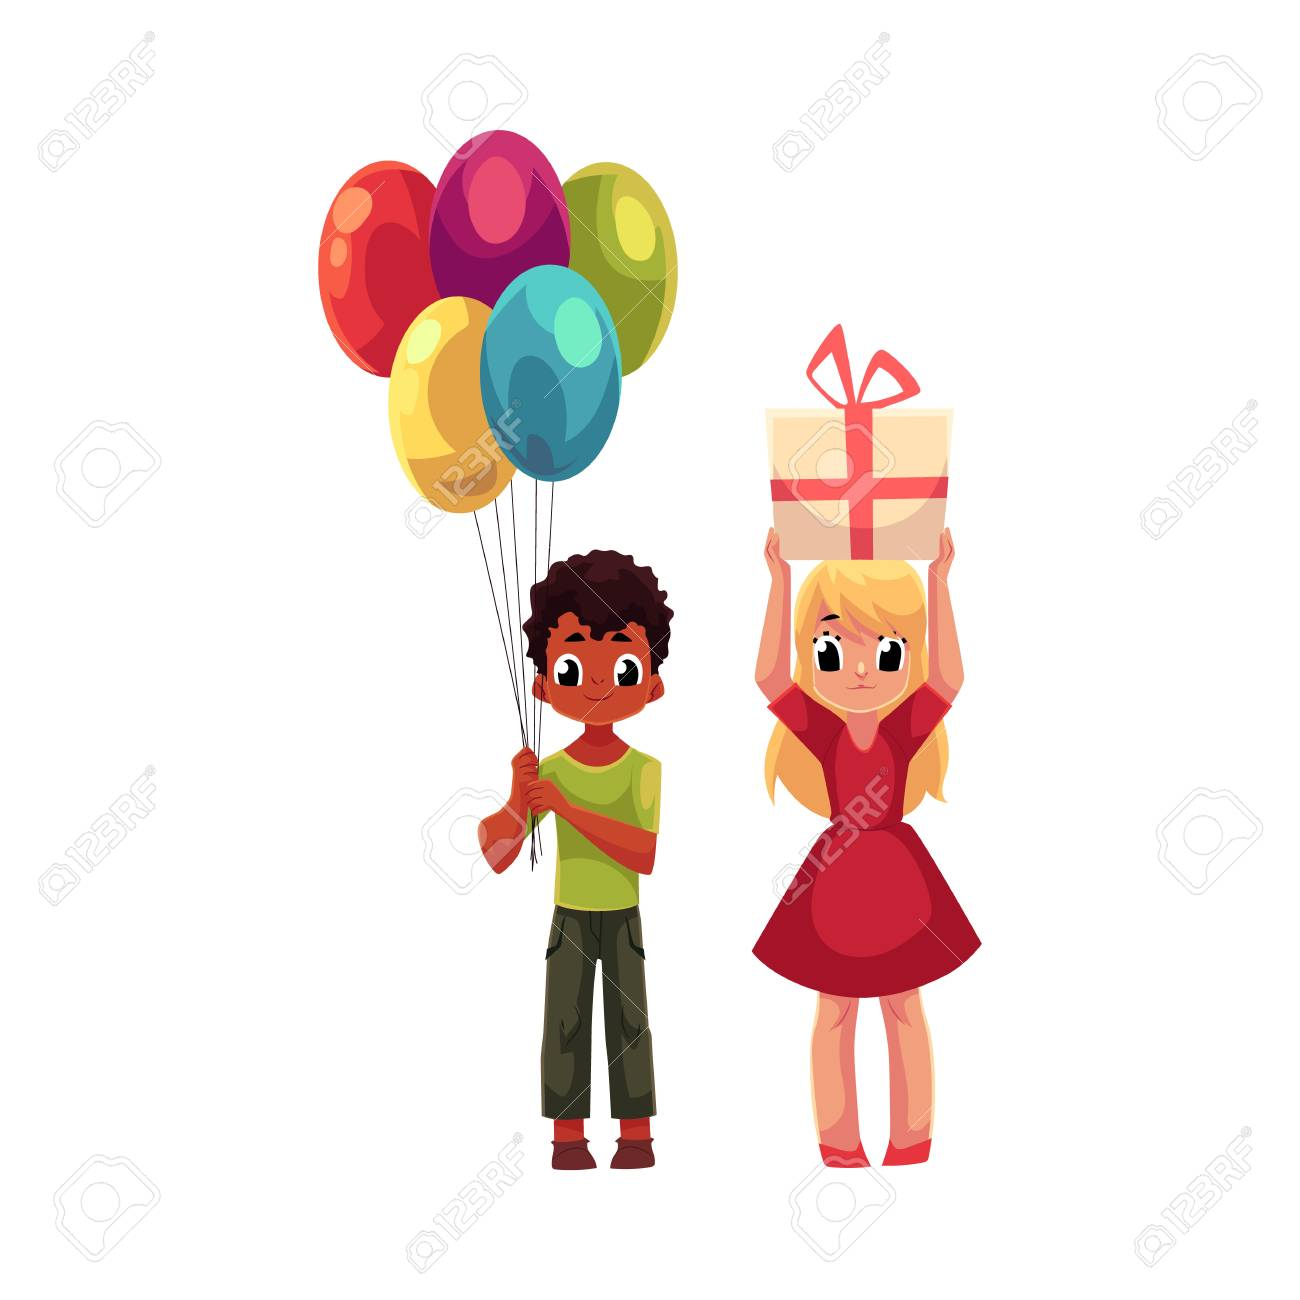 Black Boy With Bunch Of Balloons And Blond Girl Holding Birthday